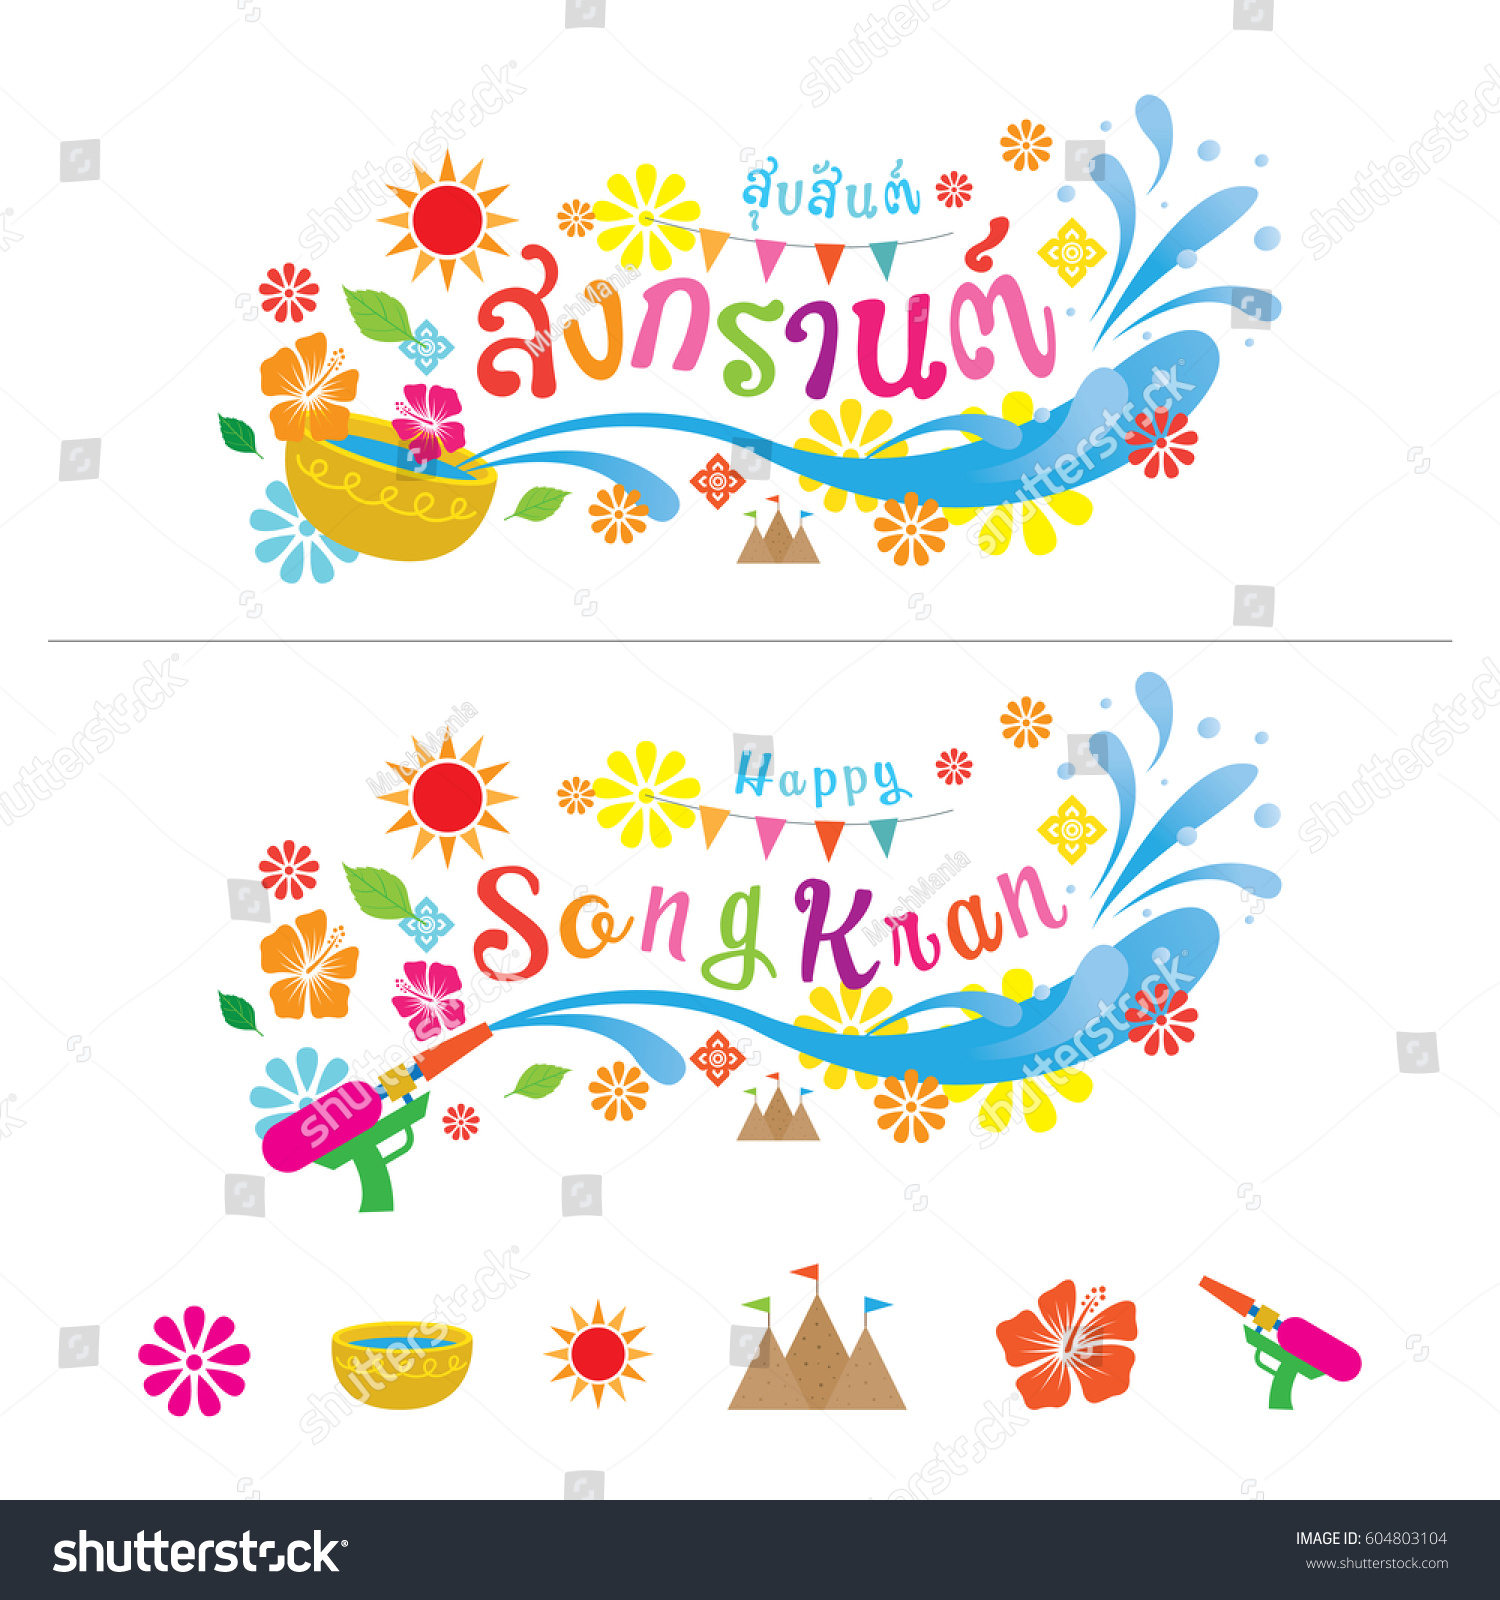 the songkran festival traditional new year s Considered one of thailand's most important festivals, songkran is celebrated annually to mark the beginning of the traditional thai new year.